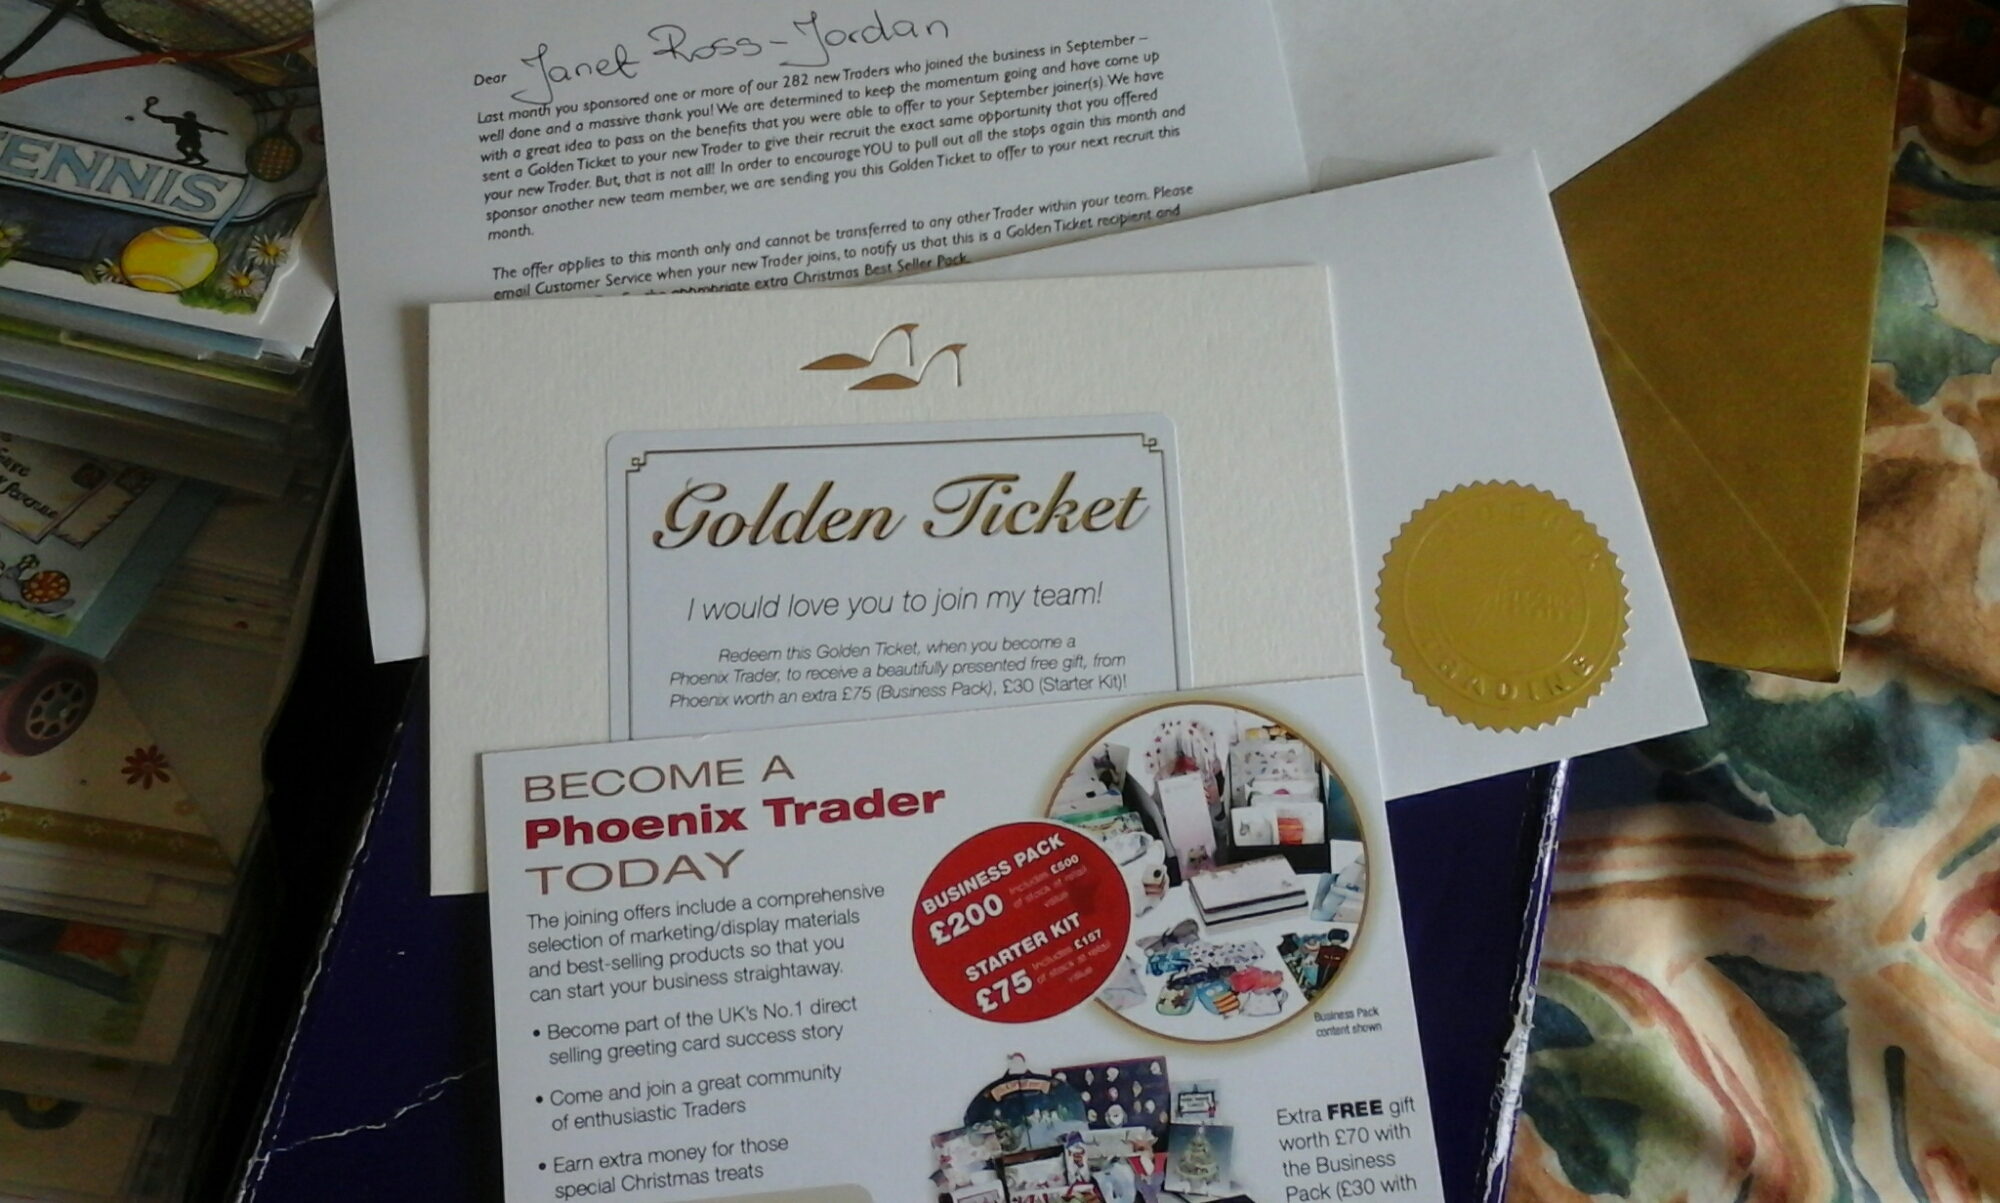 Phoenix Trading Golden Ticket